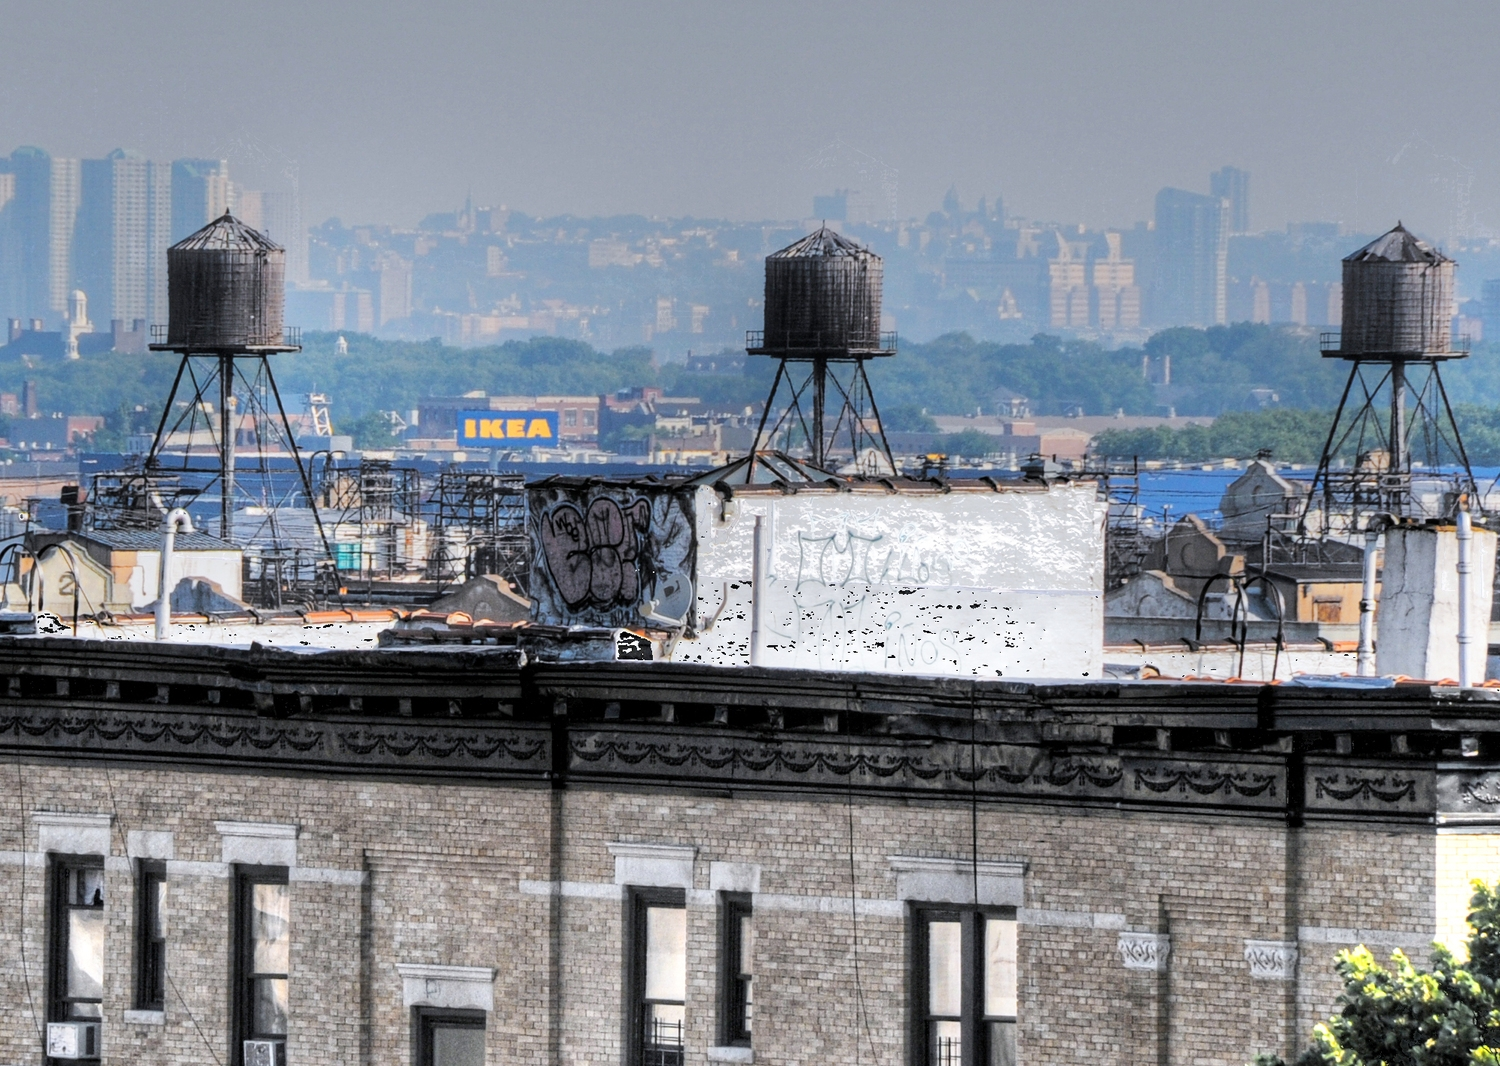 Brooklyn rooftop